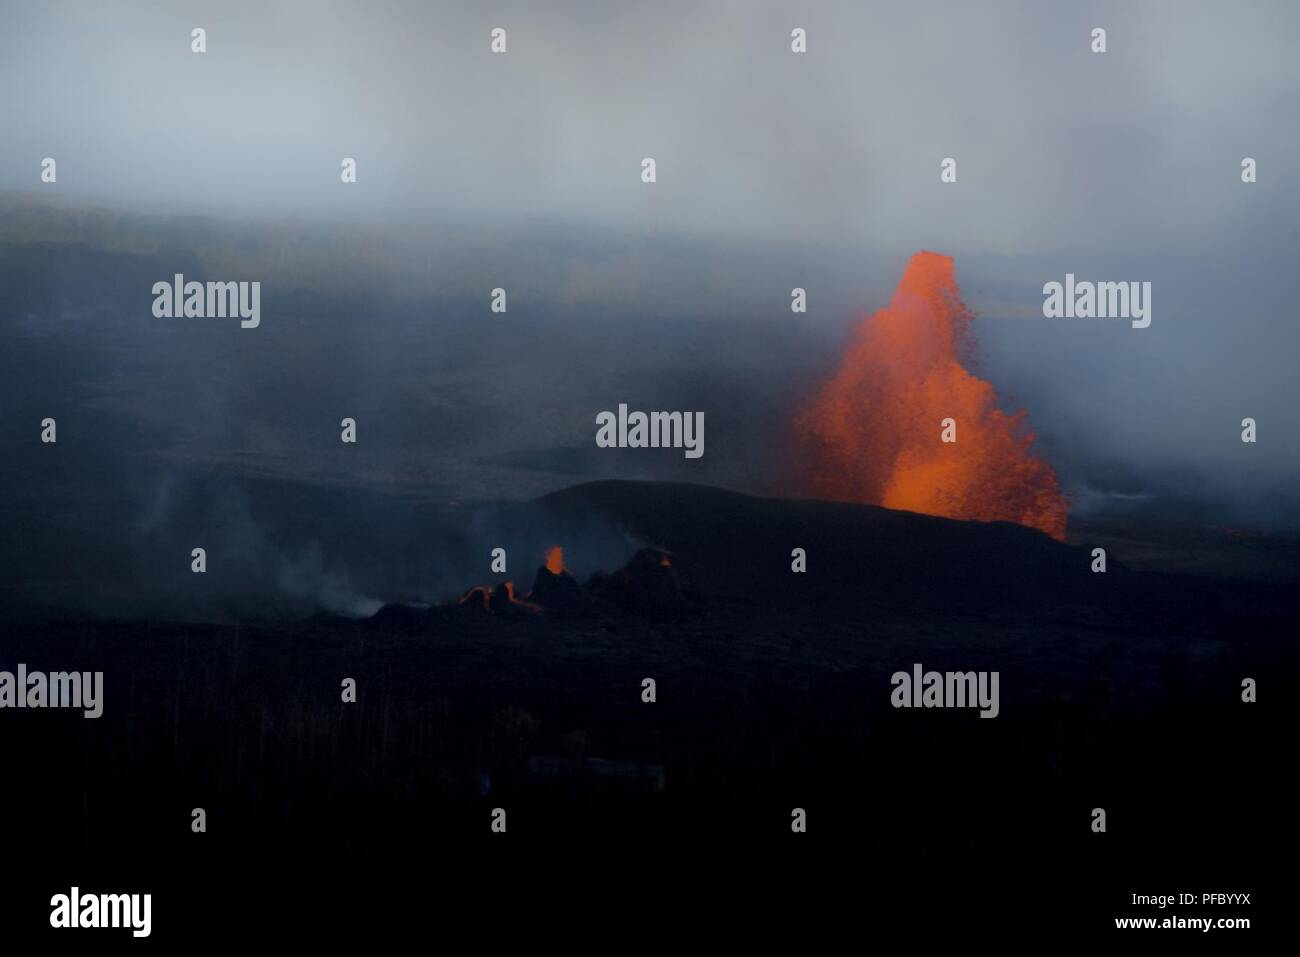 Leilani Estates, Hawaii, May 30, 2018 – Lava continues to fountain at Fissure 8, reaching heights of 130-210 feet. This activity is feeding a lava channel flowing east to the Kapoho Bay area and lava continues to enter the ocean around the Vacationland subdivision area. Volcanic gas emissions remain very high from the fissure eruptions. At the request of the state, FEMA staff are on the ground to support local officials with life-saving emergency protective measures, debris removal, and the repair, replacement, or restoration of disaster-damaged publicly-owned facilities. - Stock Image